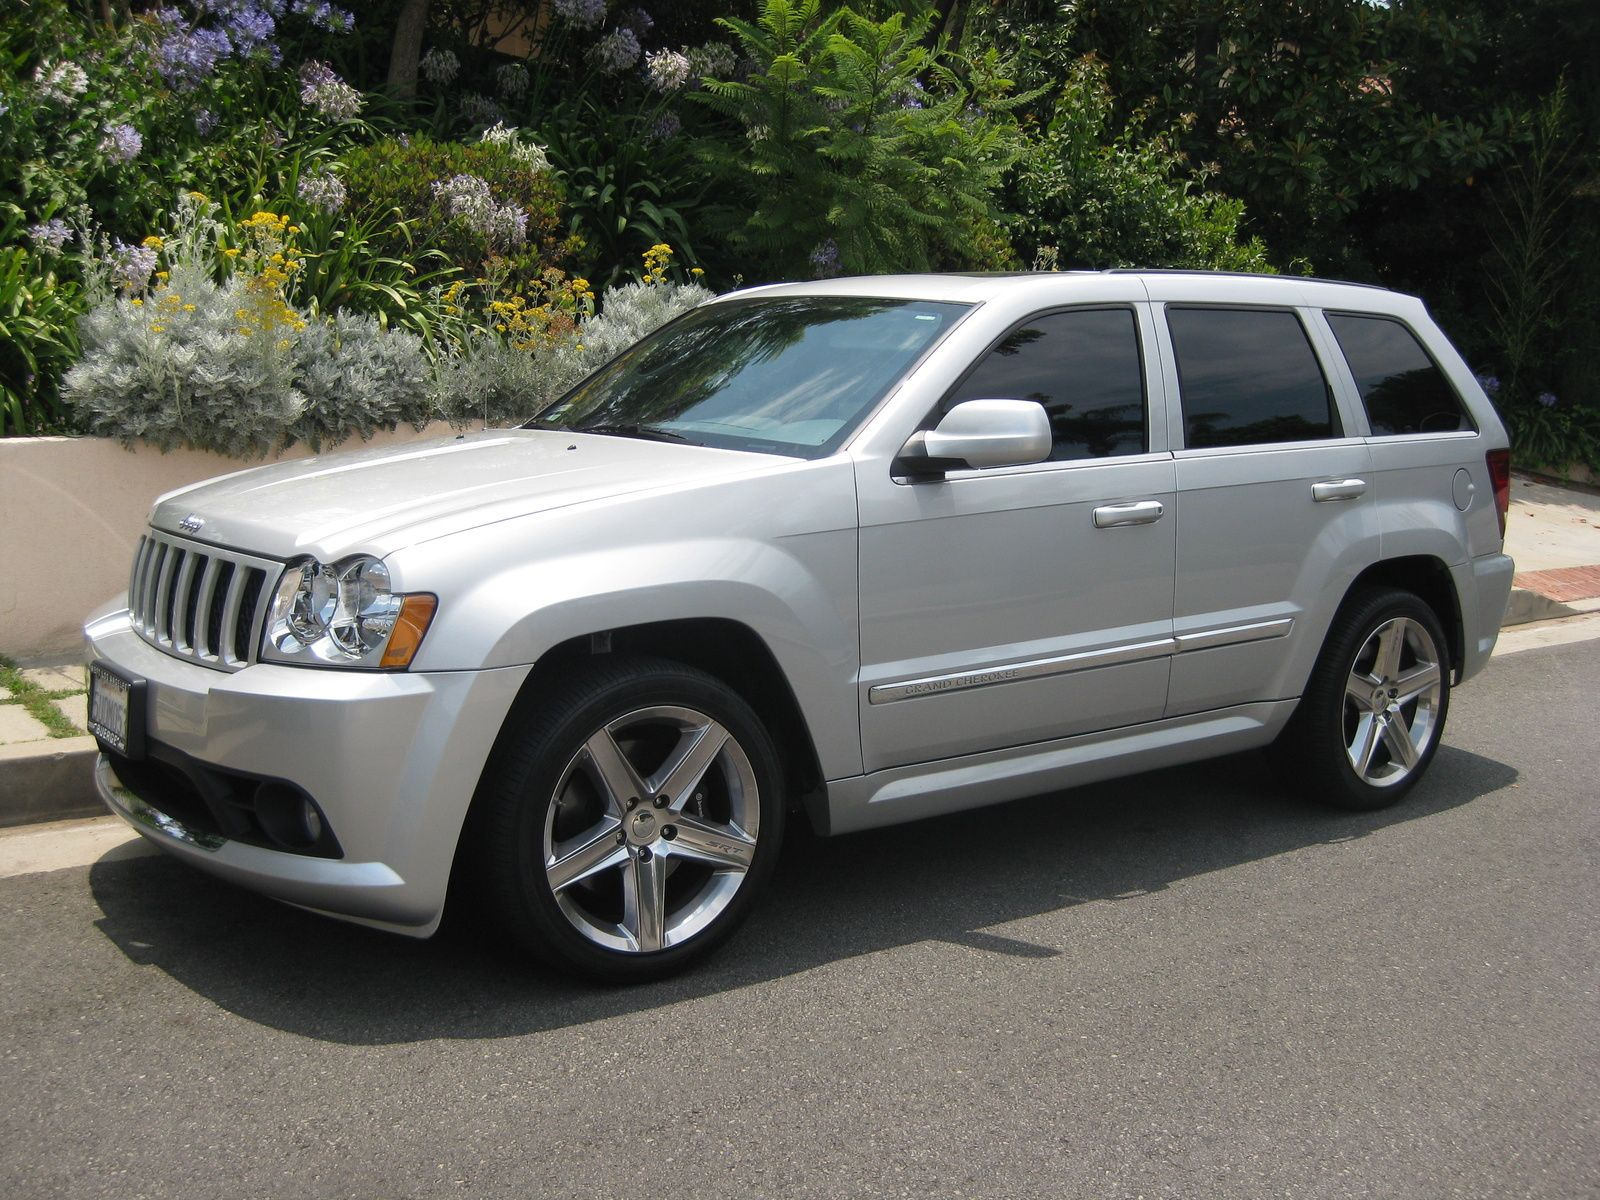 2006 Jeep Grand Cherokee SRT8 Photo   3